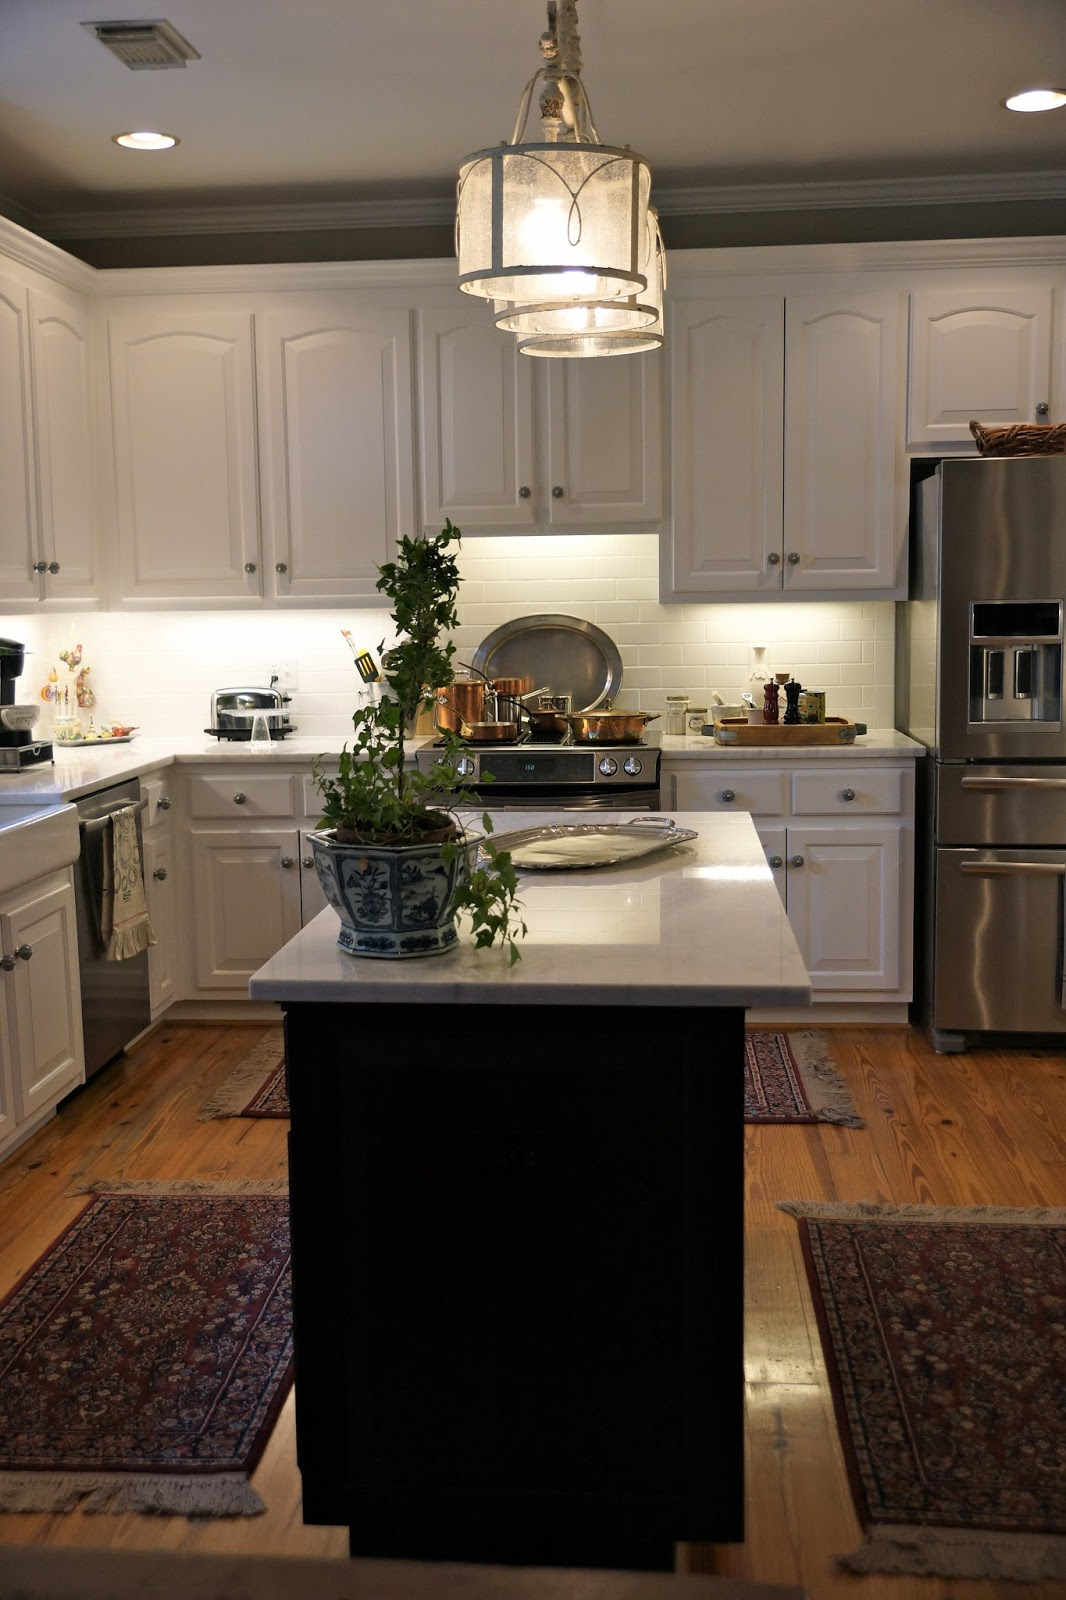 The French Hutch This Old Kitchen And A Facelift. Diy Kitchen Shelving Ideas. Kitchen Lighting Nashville Tn. Kitchen Plan Online. Industrial Kitchen For Rent Miami. Old Kitchen Appliance Brands. Tiny Kitchens. Kitchen Layout For Bakery. Kitchen Tv Shelf